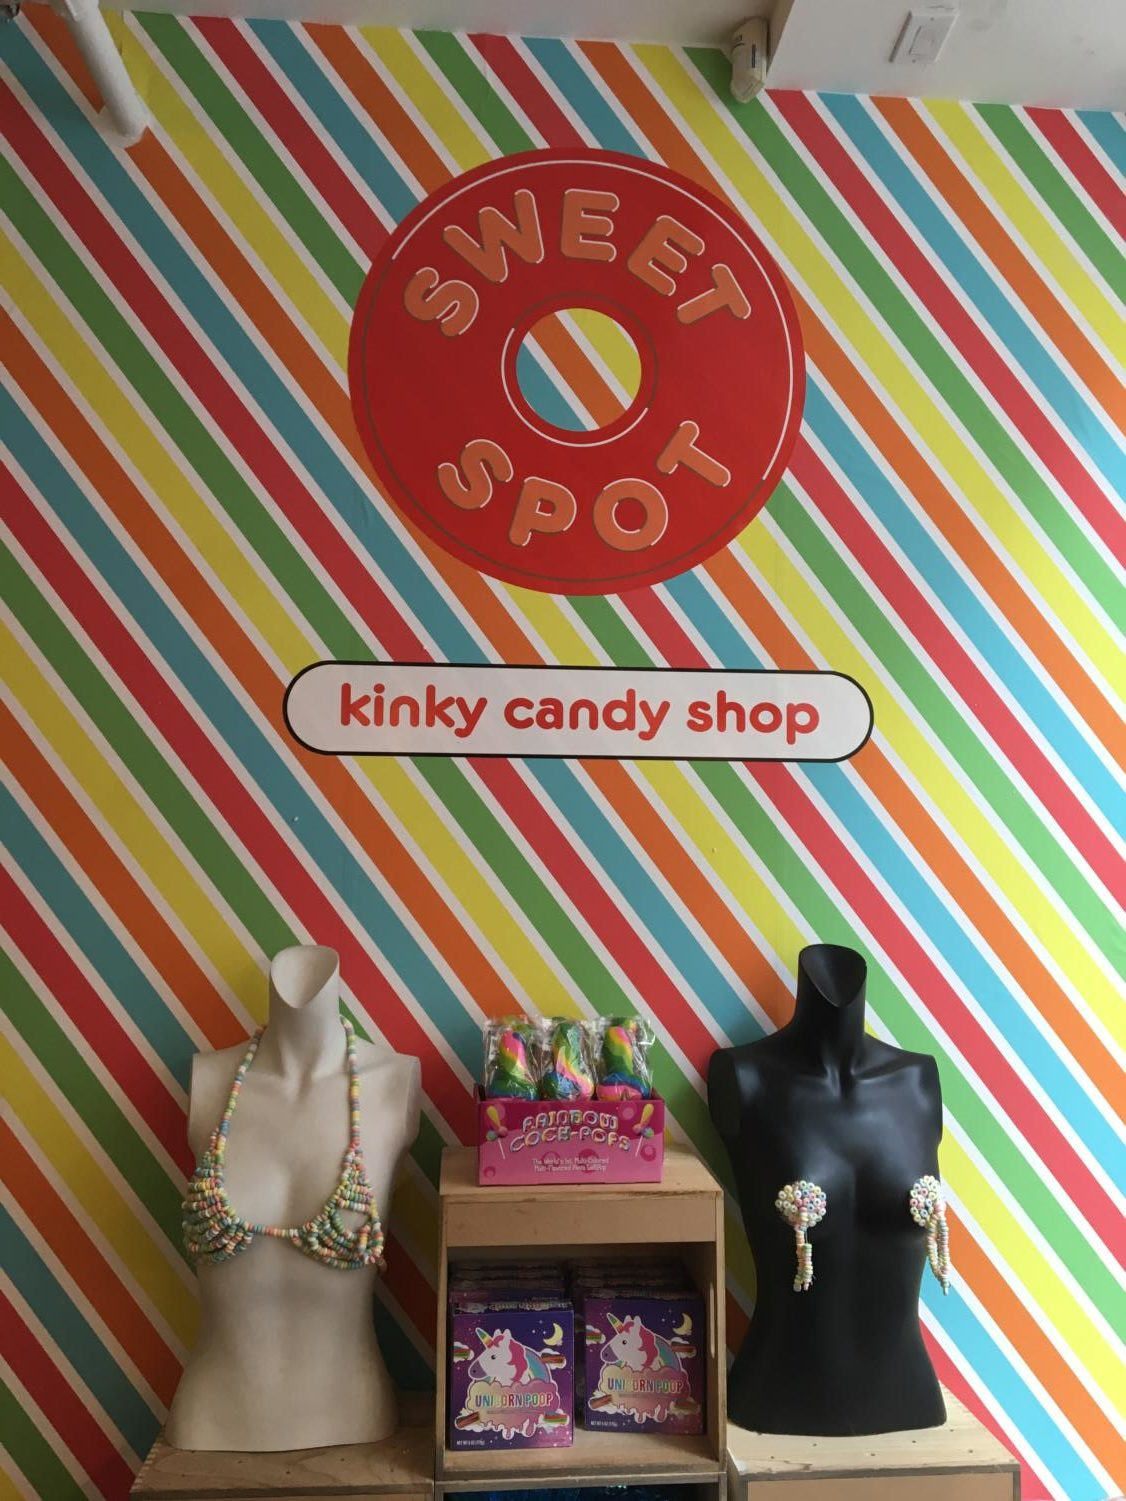 The Kinky Candy Shop was just one of the many displays at the Museum of Sex first-year students got to see this past Saturday. Photo by Emma Petras.